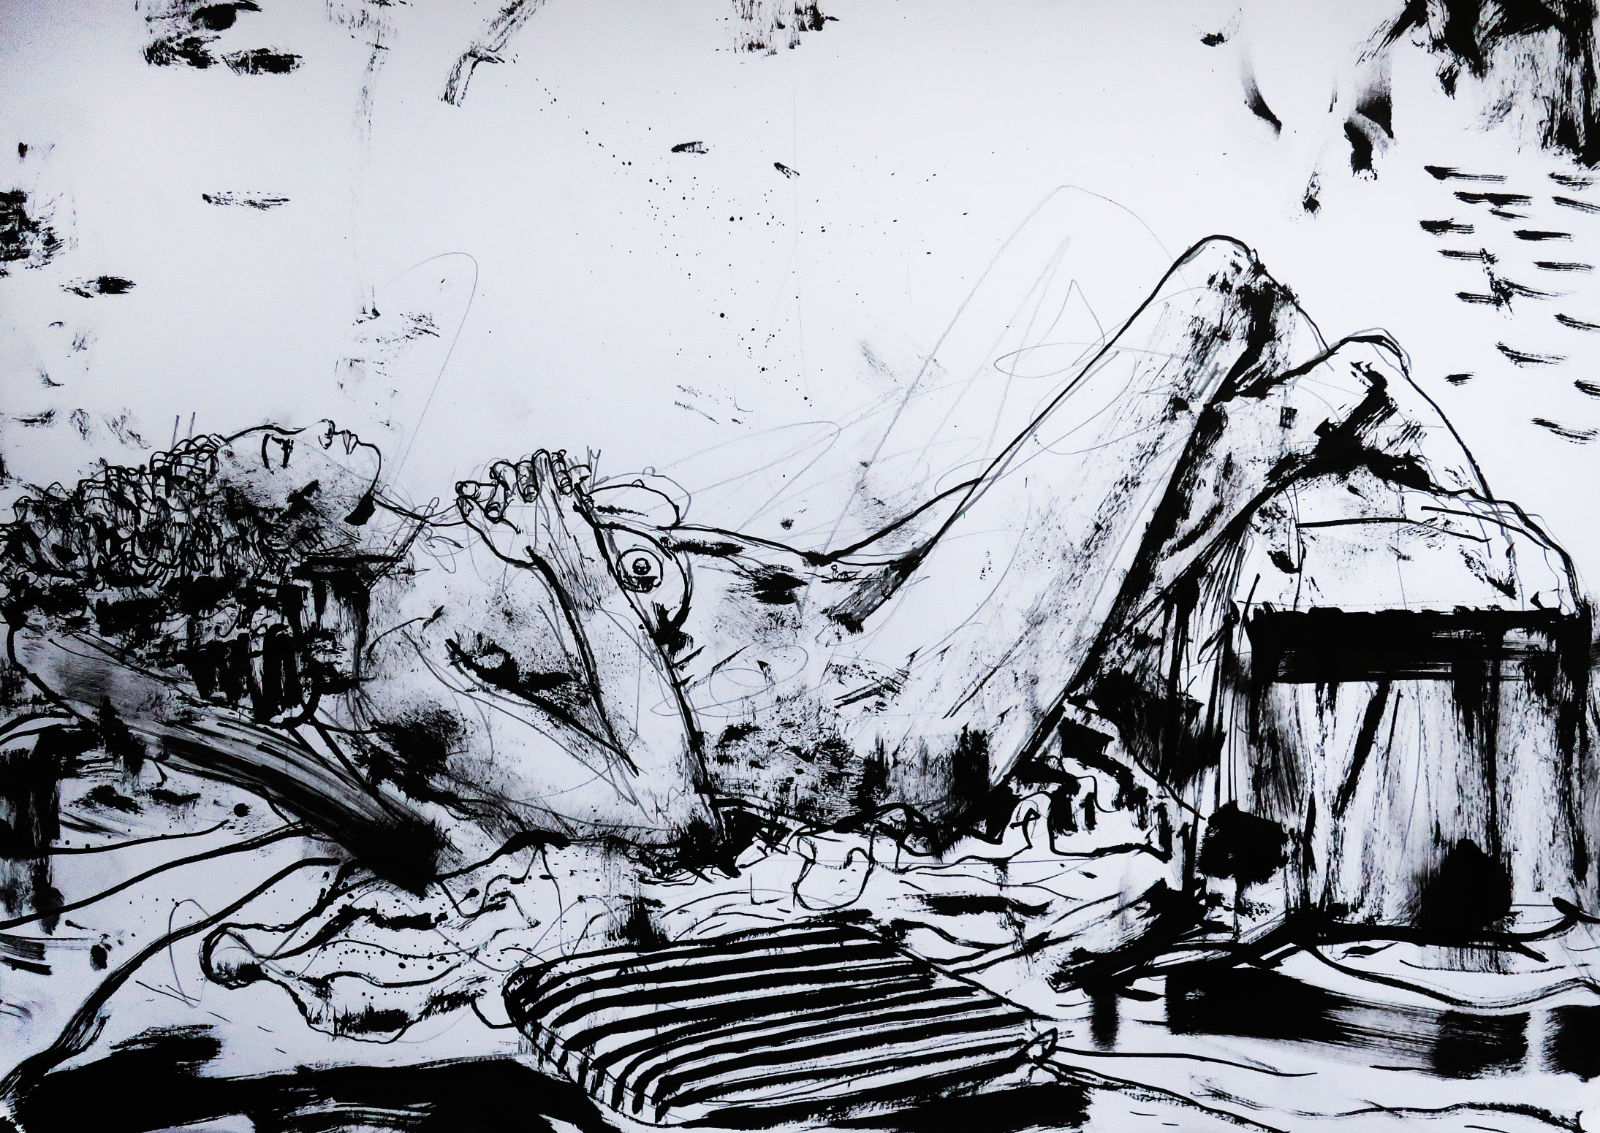 Breanna daydreaming nude ink drawing